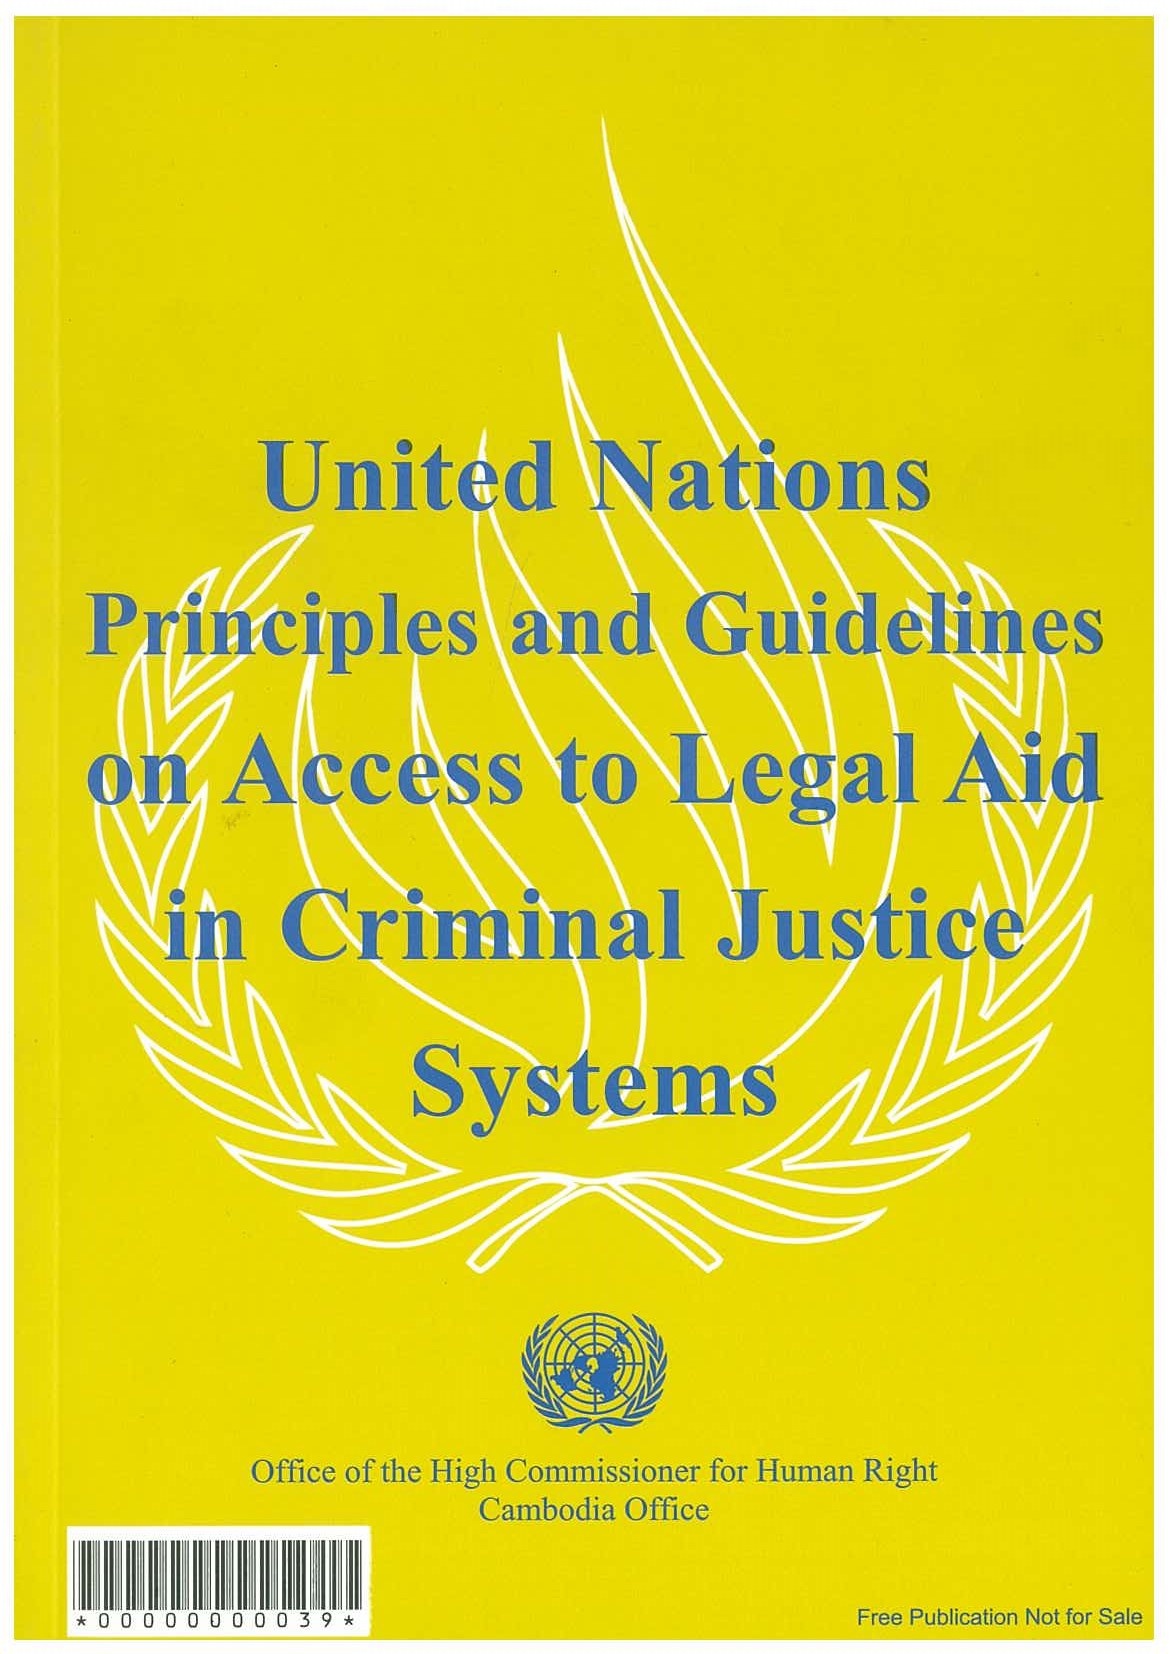 United Nations Principles and Guidelines on Access to Legal Aid in Criminal Justice Systems